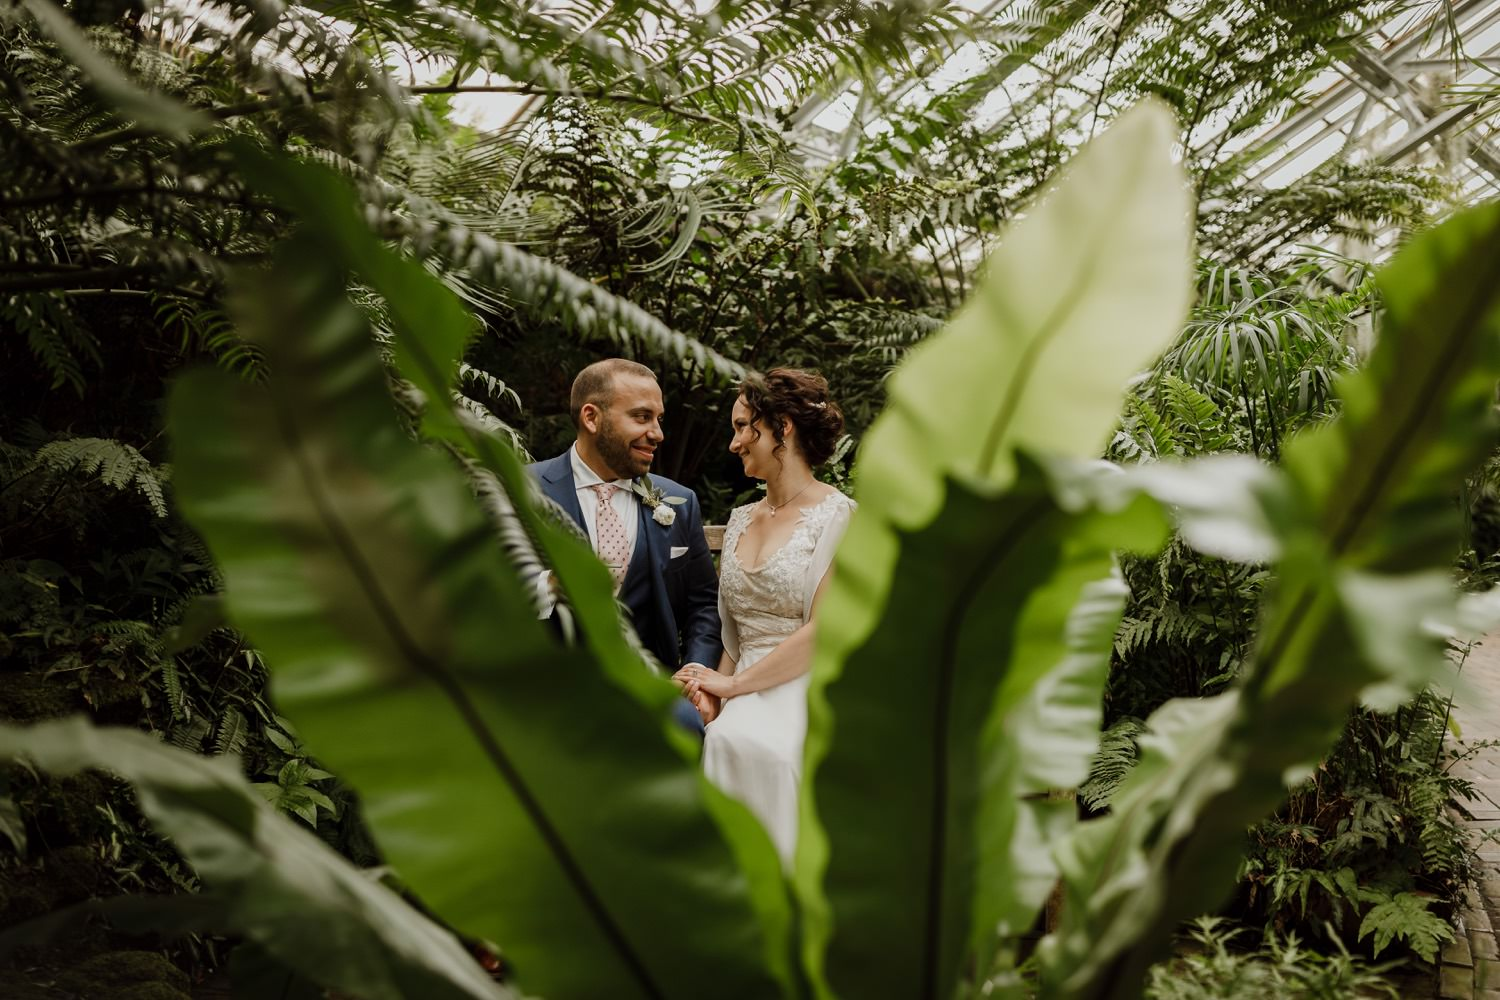 creative portrait of the bride and groom at Garfield Park Conservatory on the wedding day